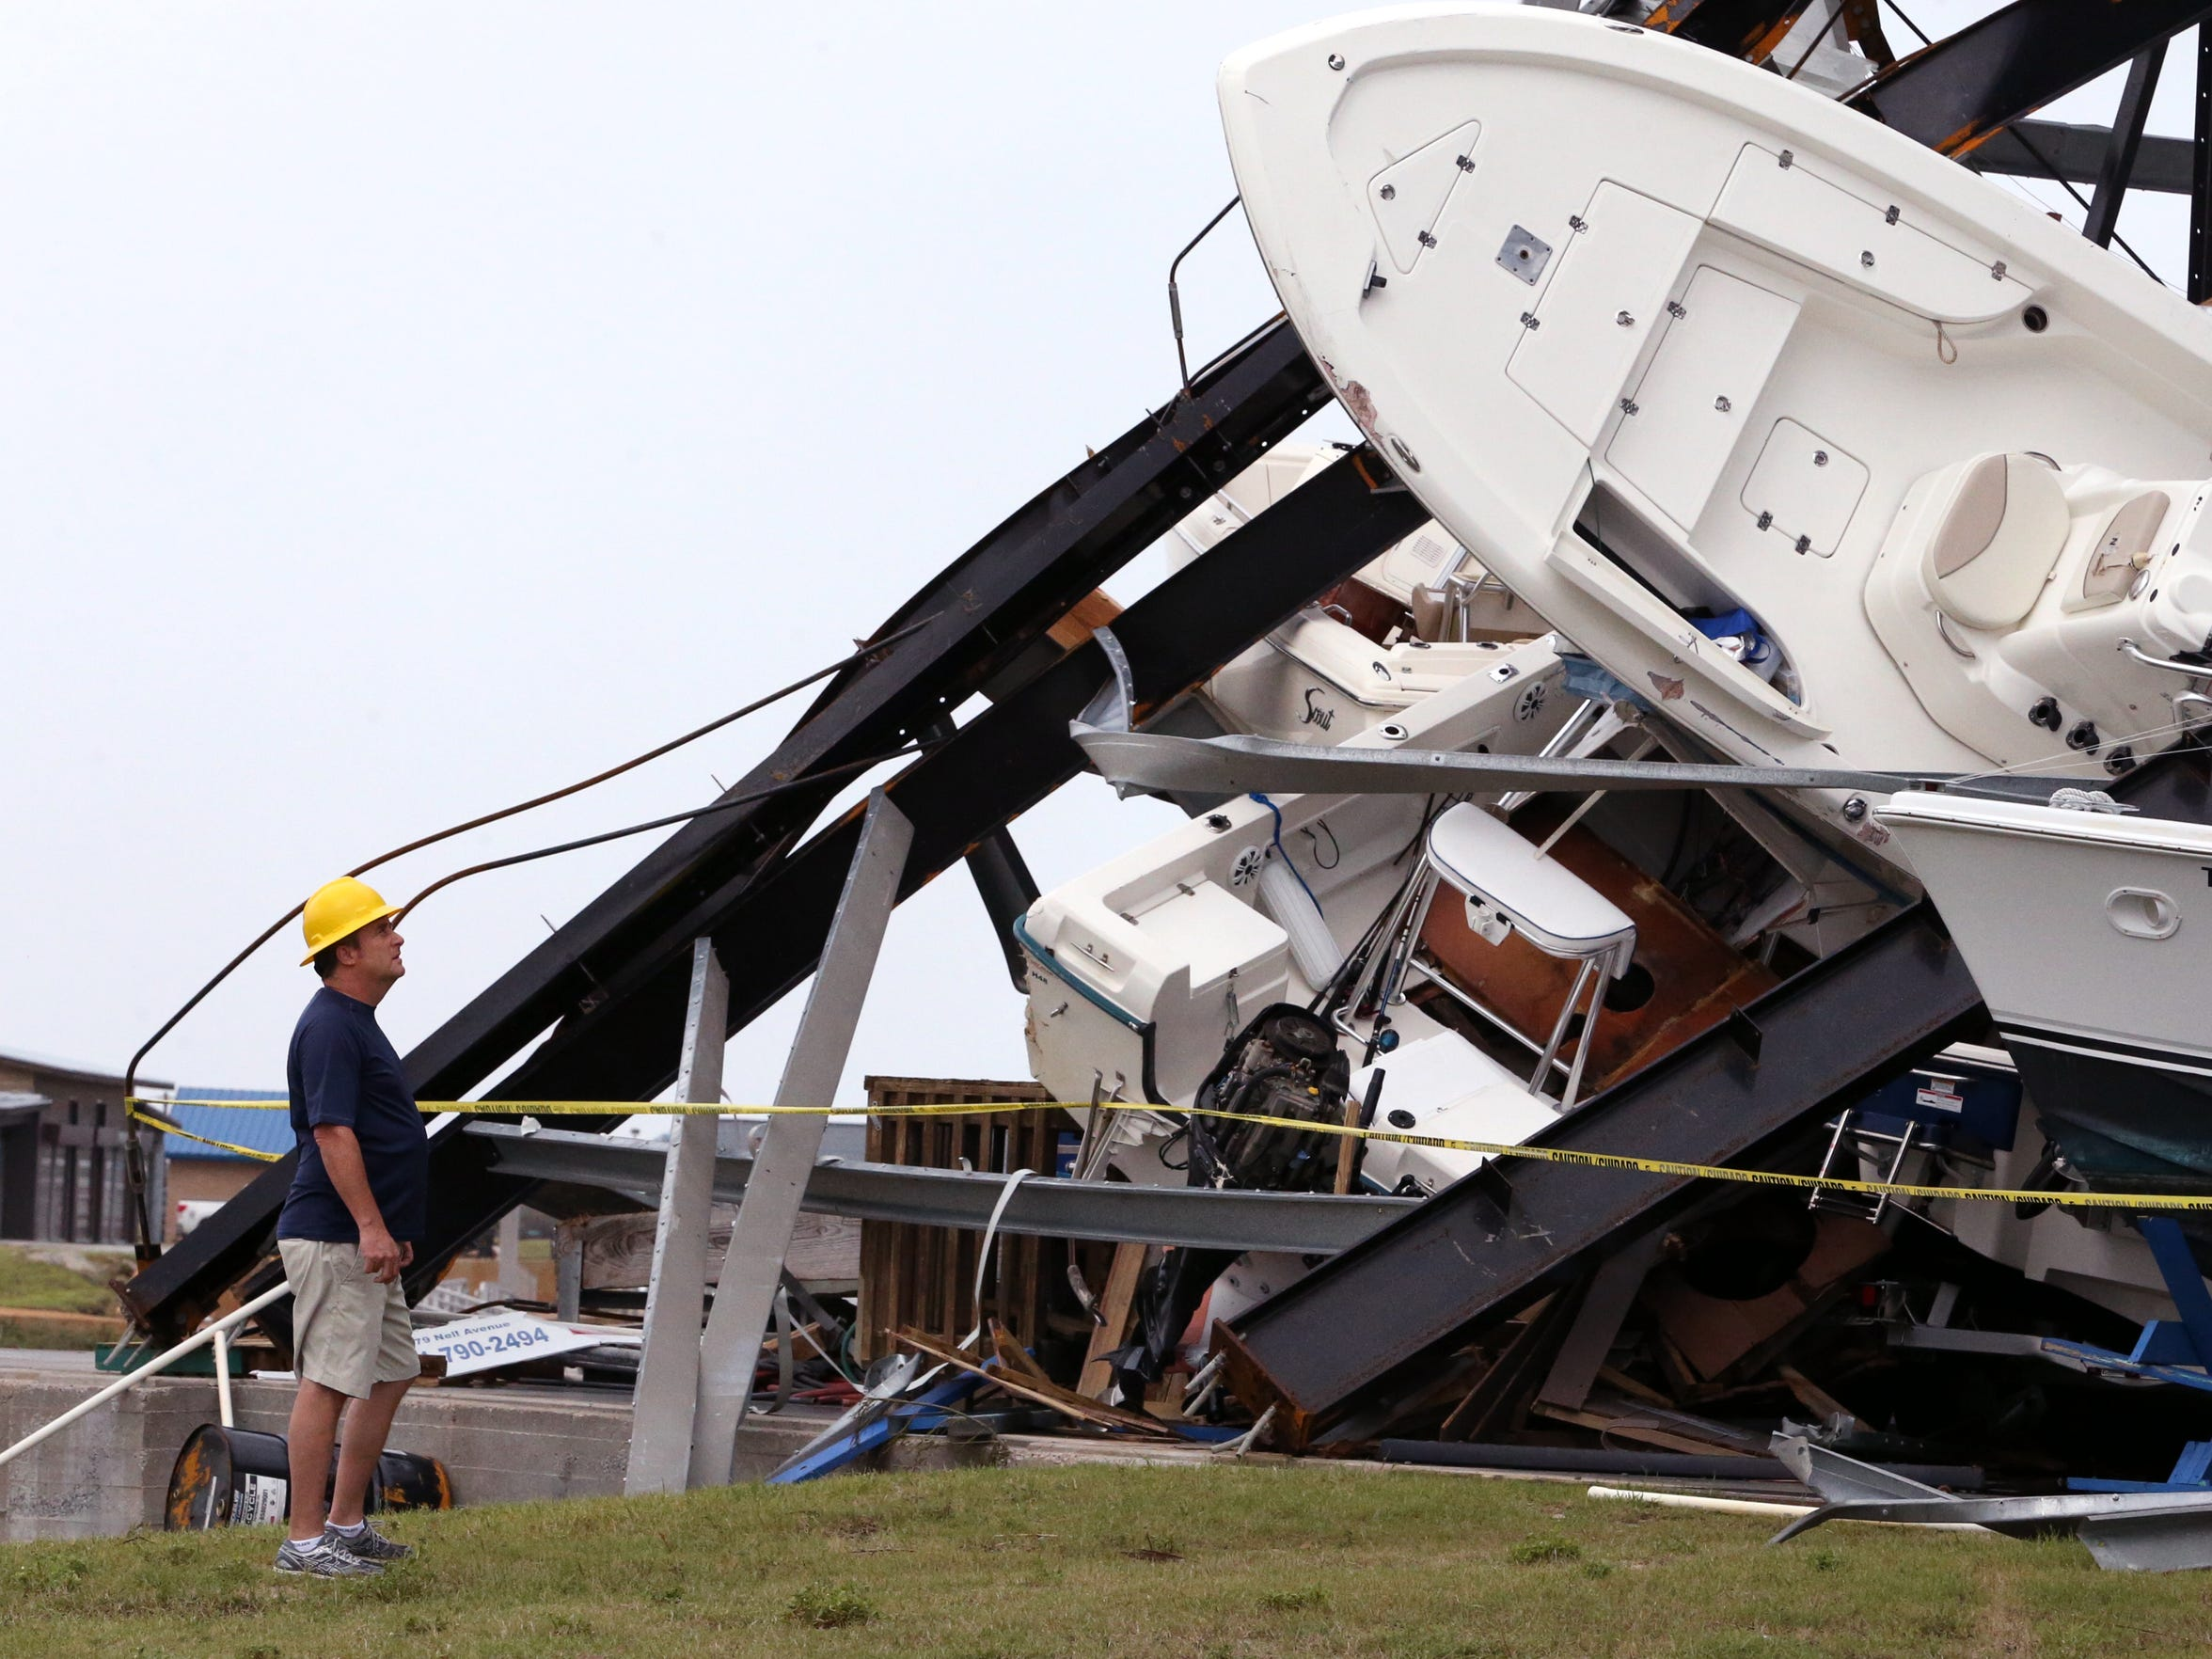 """Roger Braugh Jr. searches for his boat is this boat storage facility in Cove Harbor in Rockport, TX, on Sunday, August 27, 2017, which sustained considerable damage due to Hurricane Harvey. """"I've got one chance,"""" he said. """"The boat used to be here. I see one with the right motor.""""(Corpus Christi Caller-Times, Rachel Denny Clow)"""